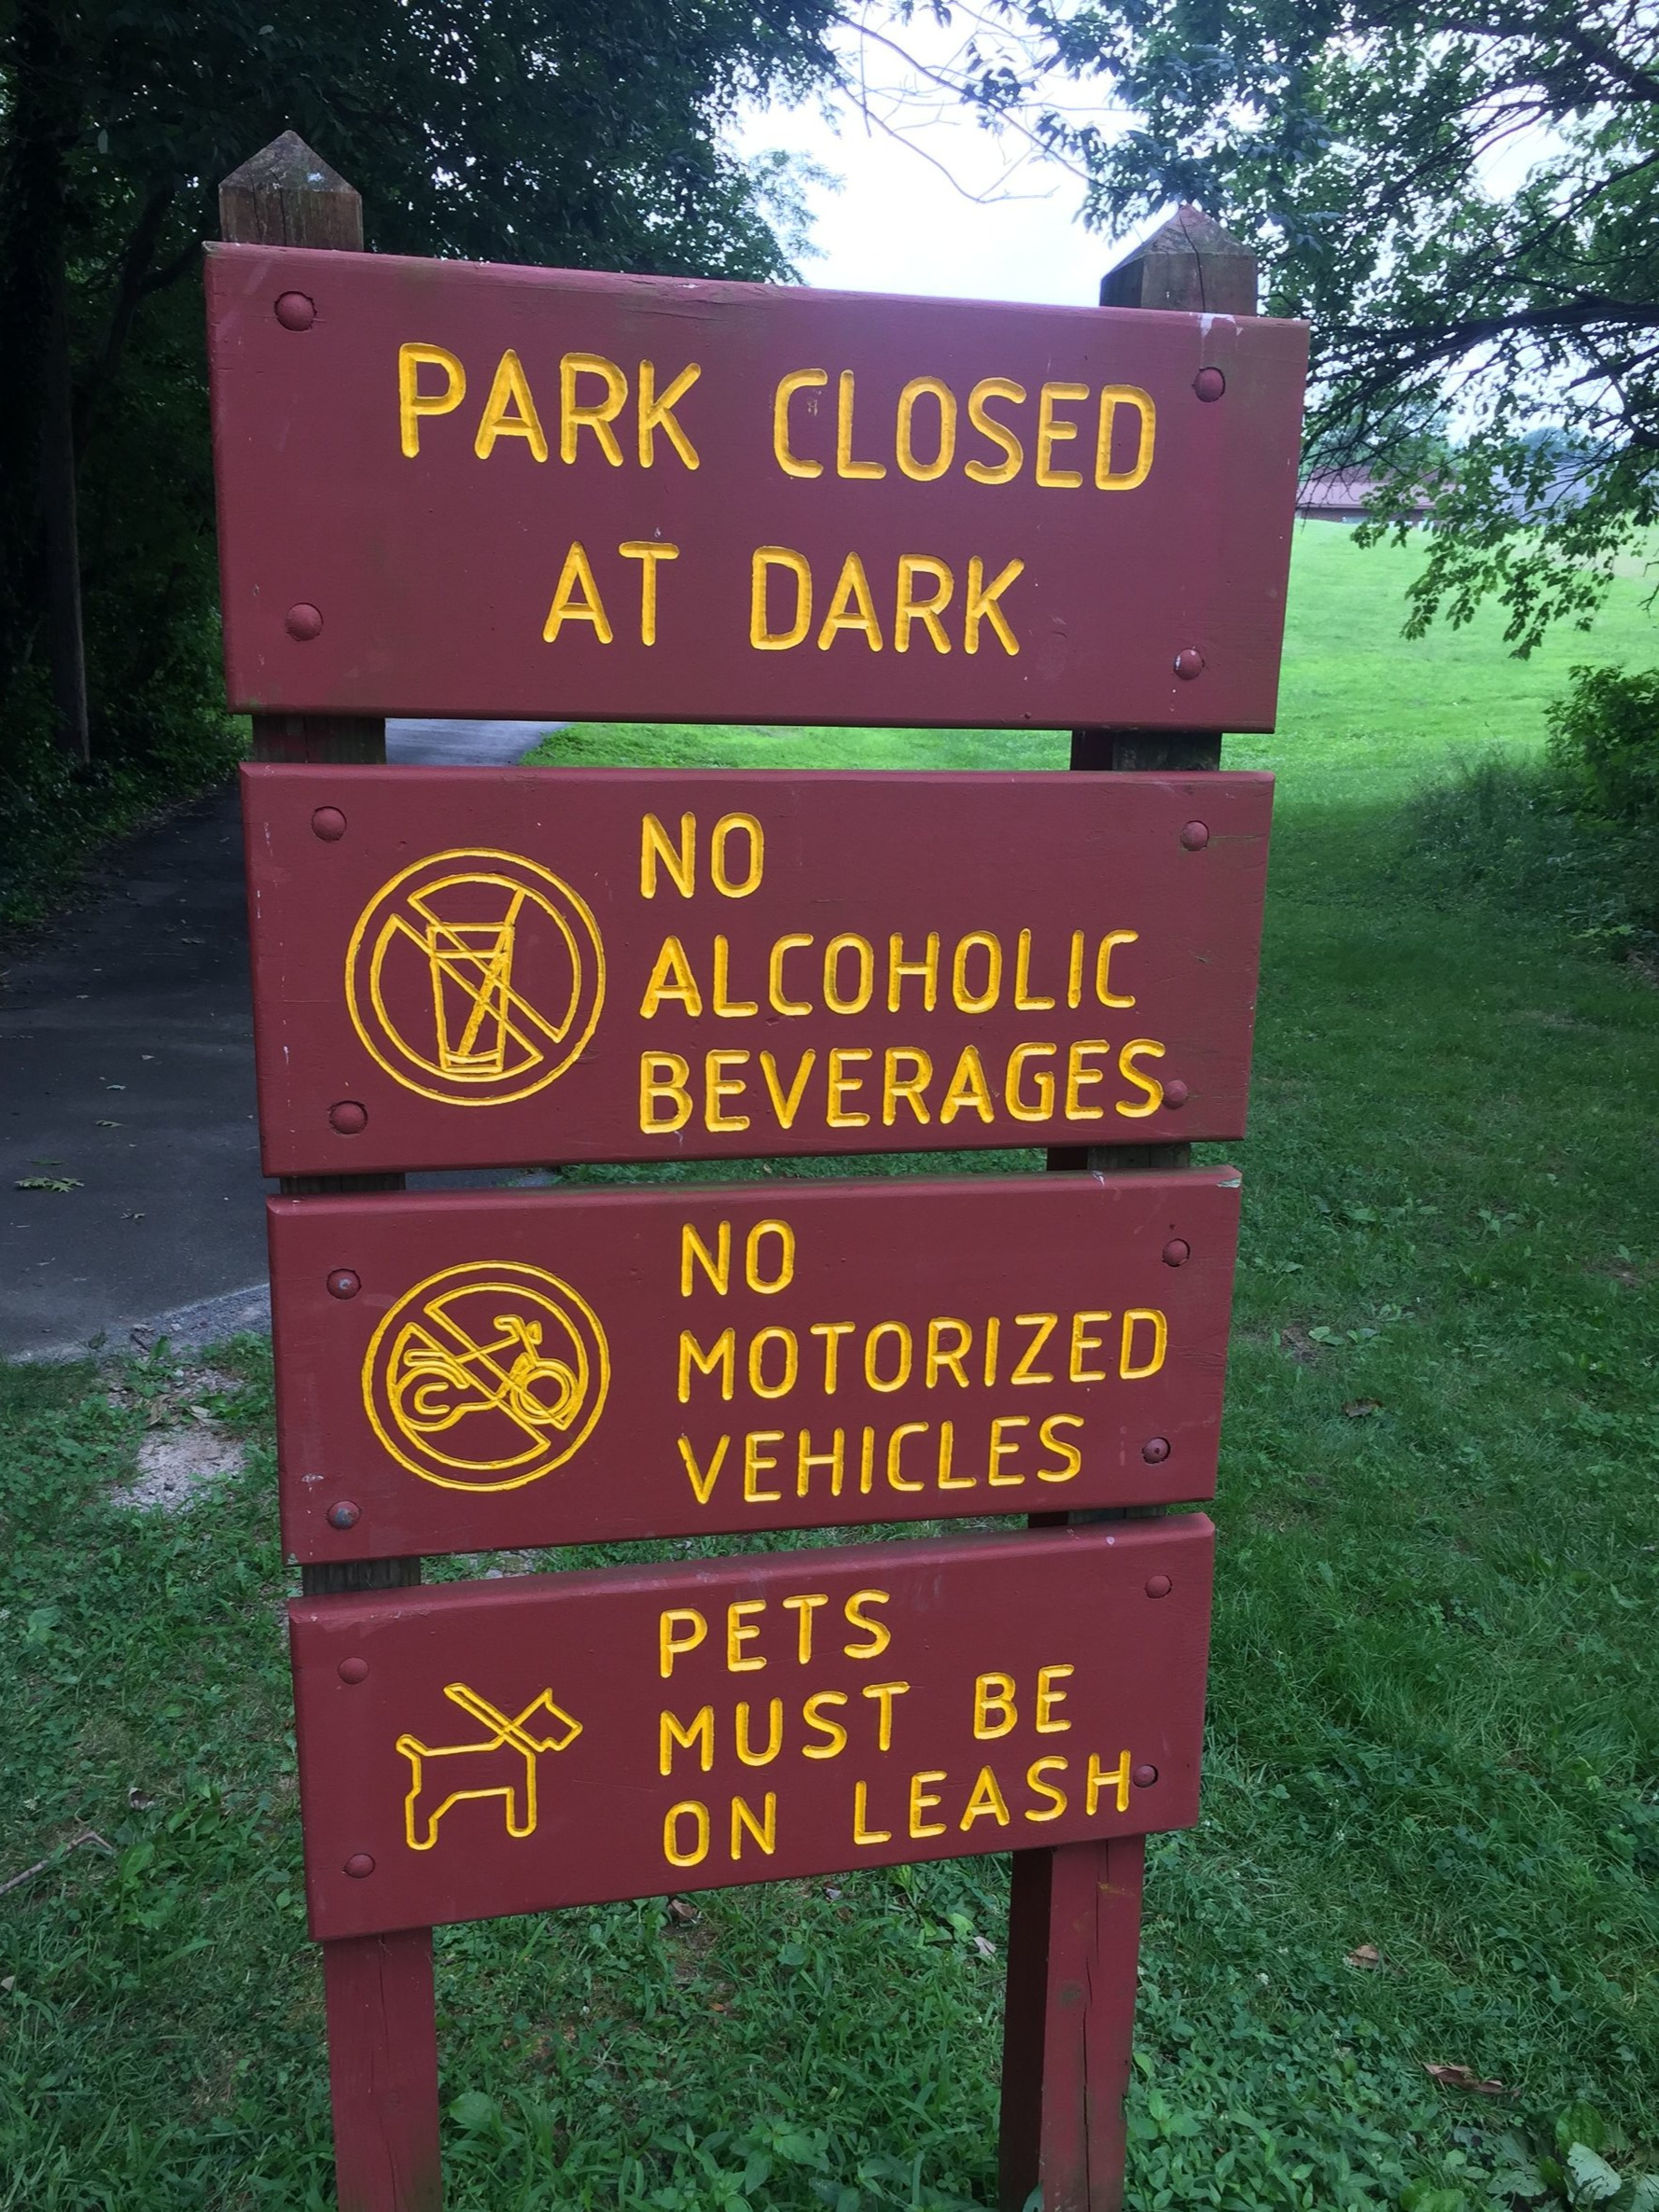 Park Rules in US County Park - mere suggestions in Mexico